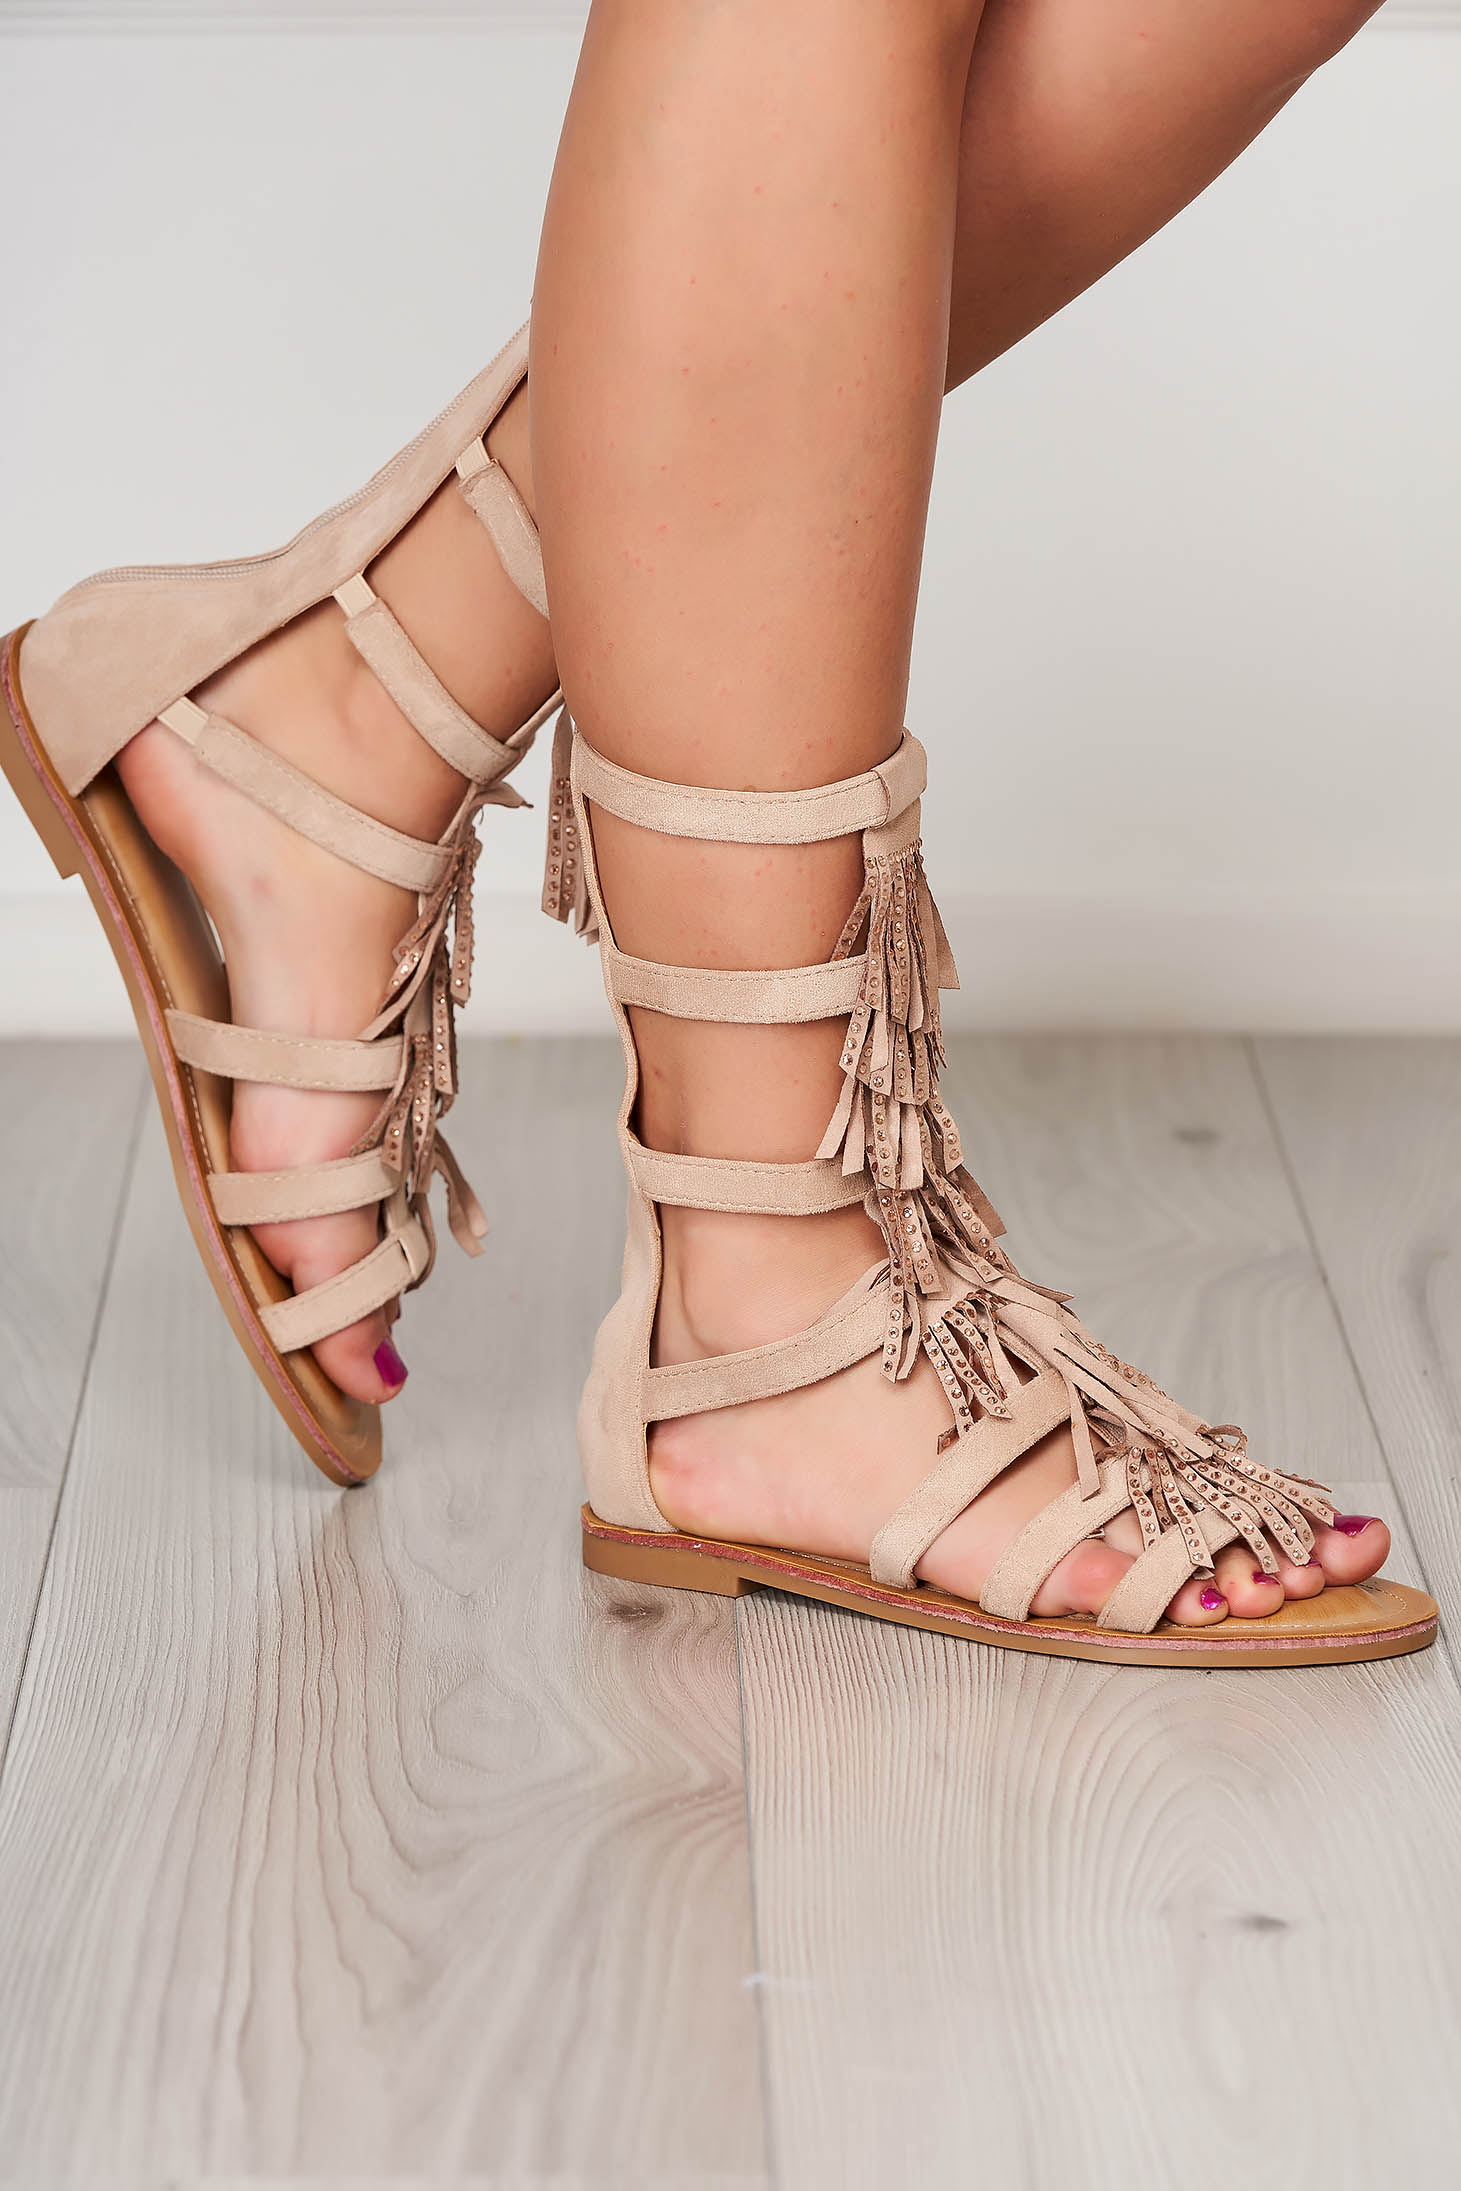 Cream sandals casual low heel with tassels